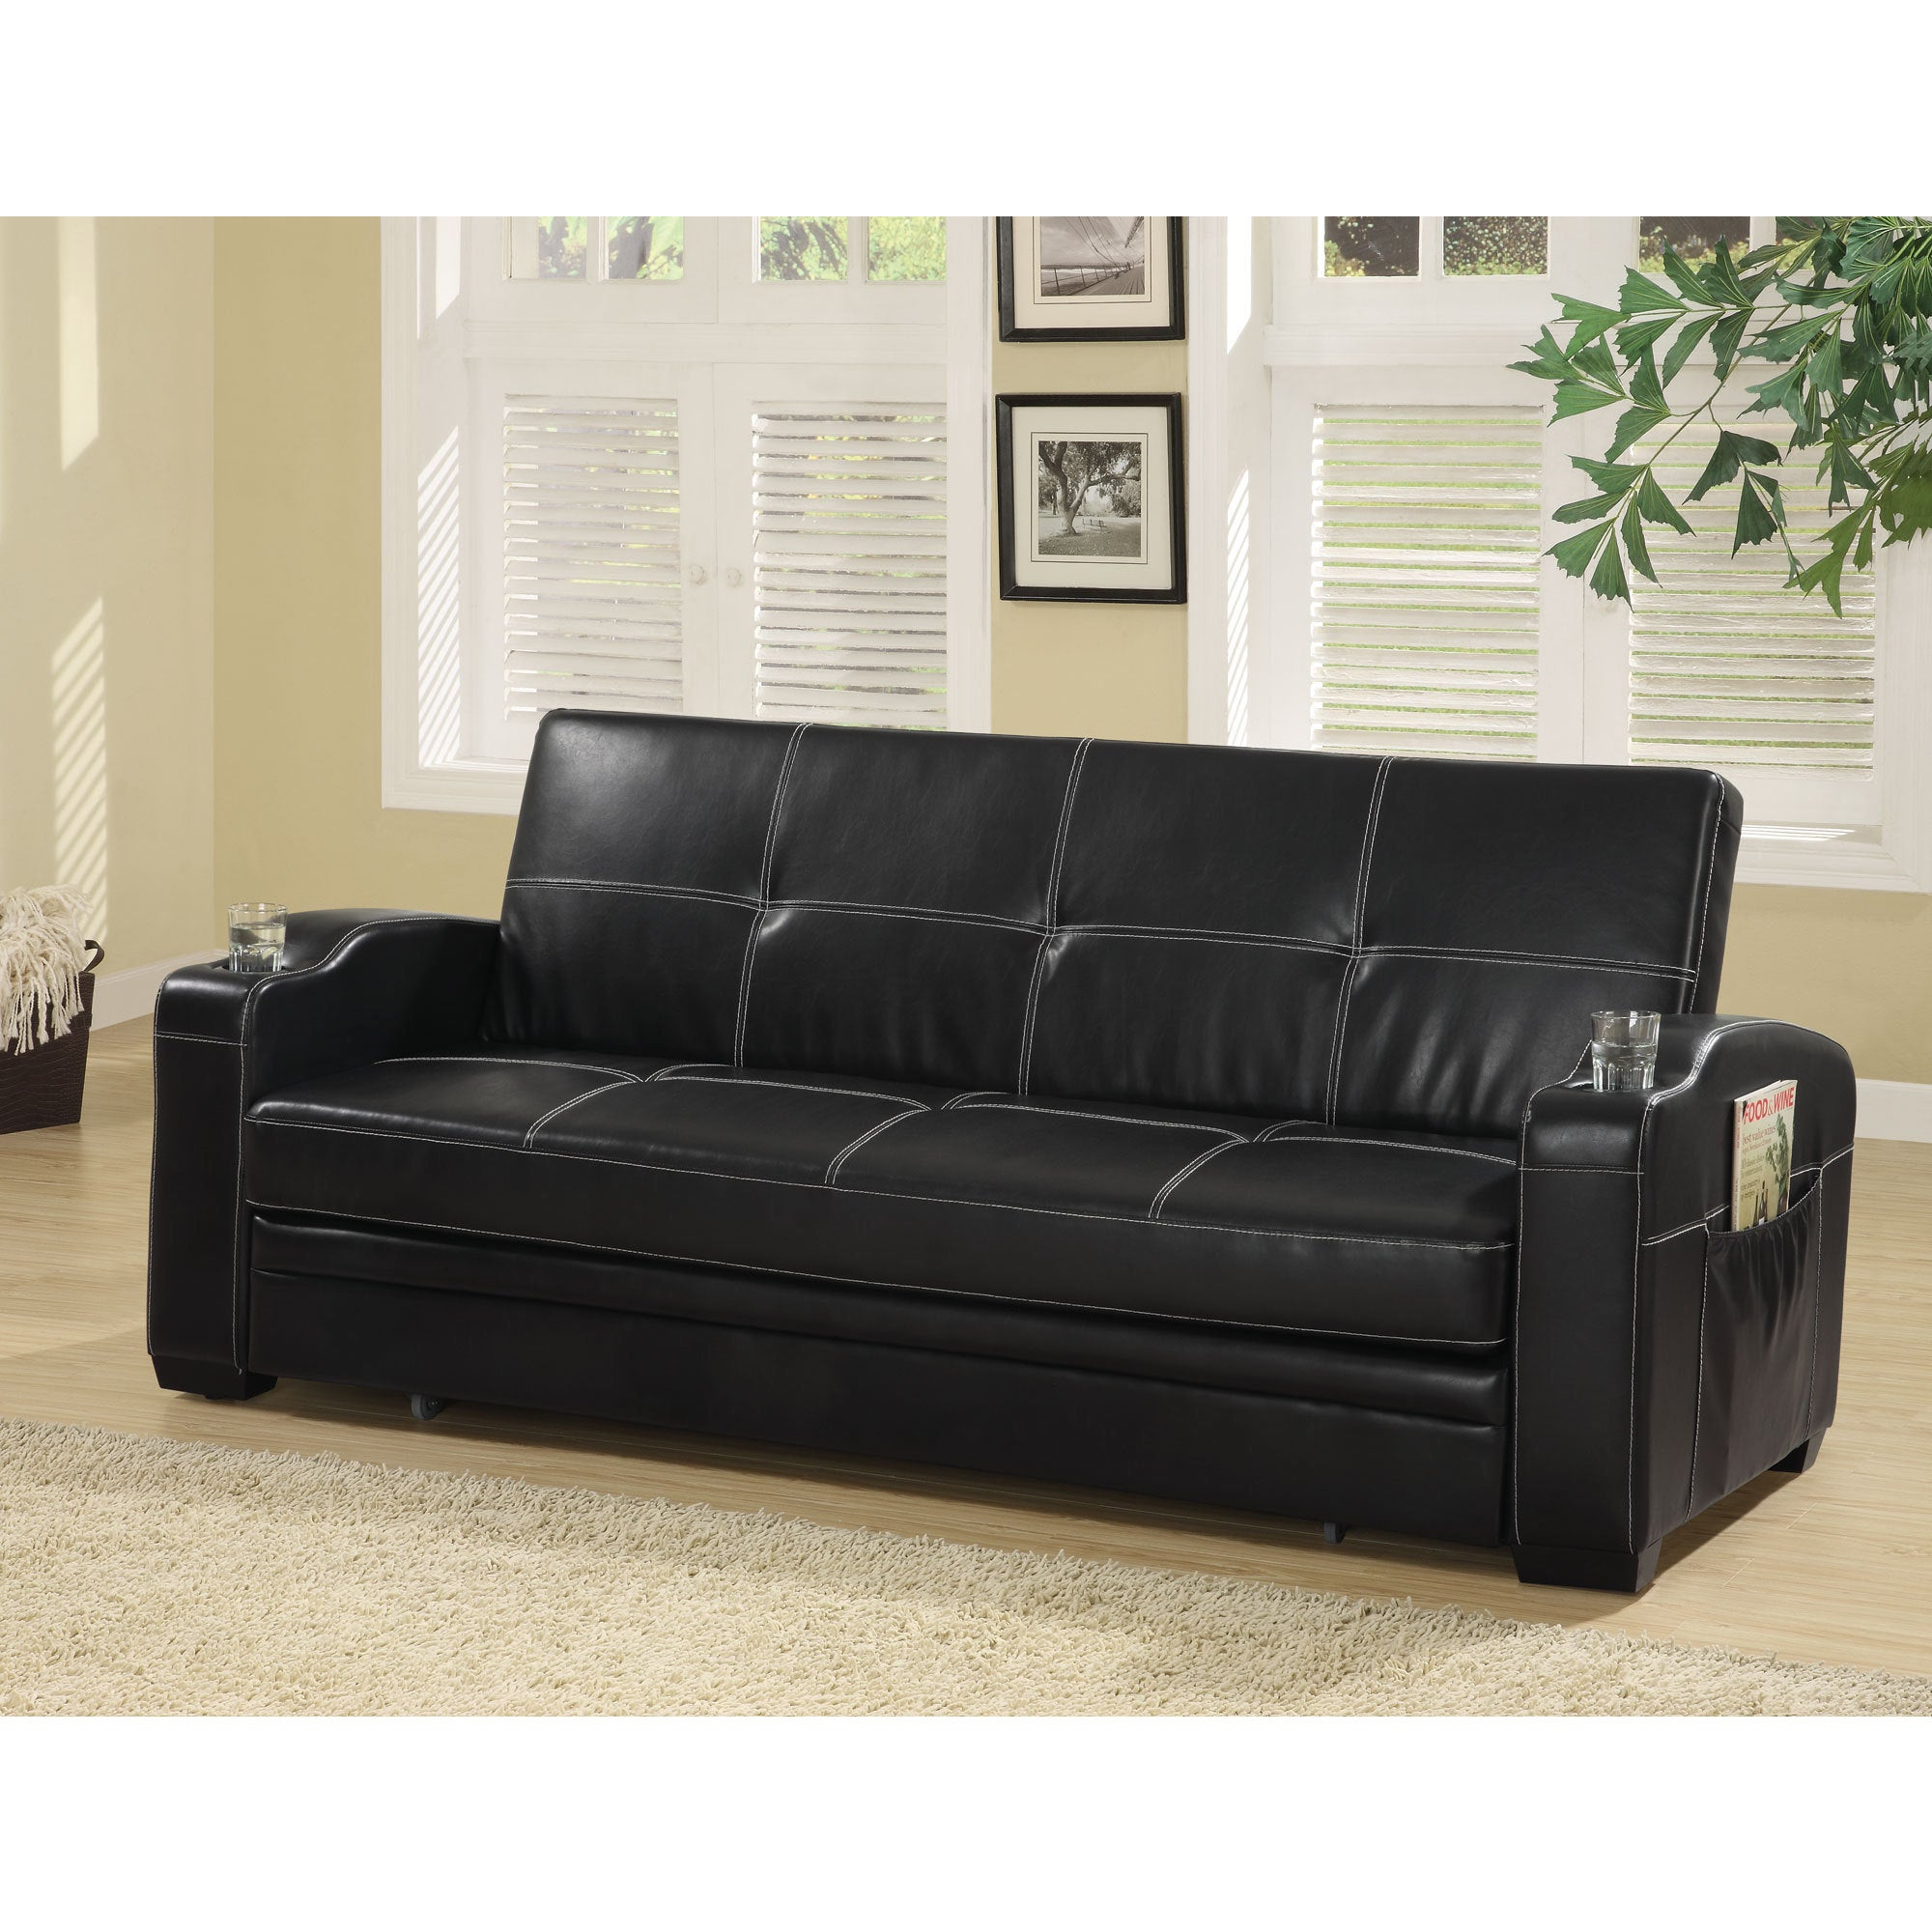 Coaster Company Contemporary Black Vinyl Sofa Bed   Free Shipping Today    Overstock   19333435